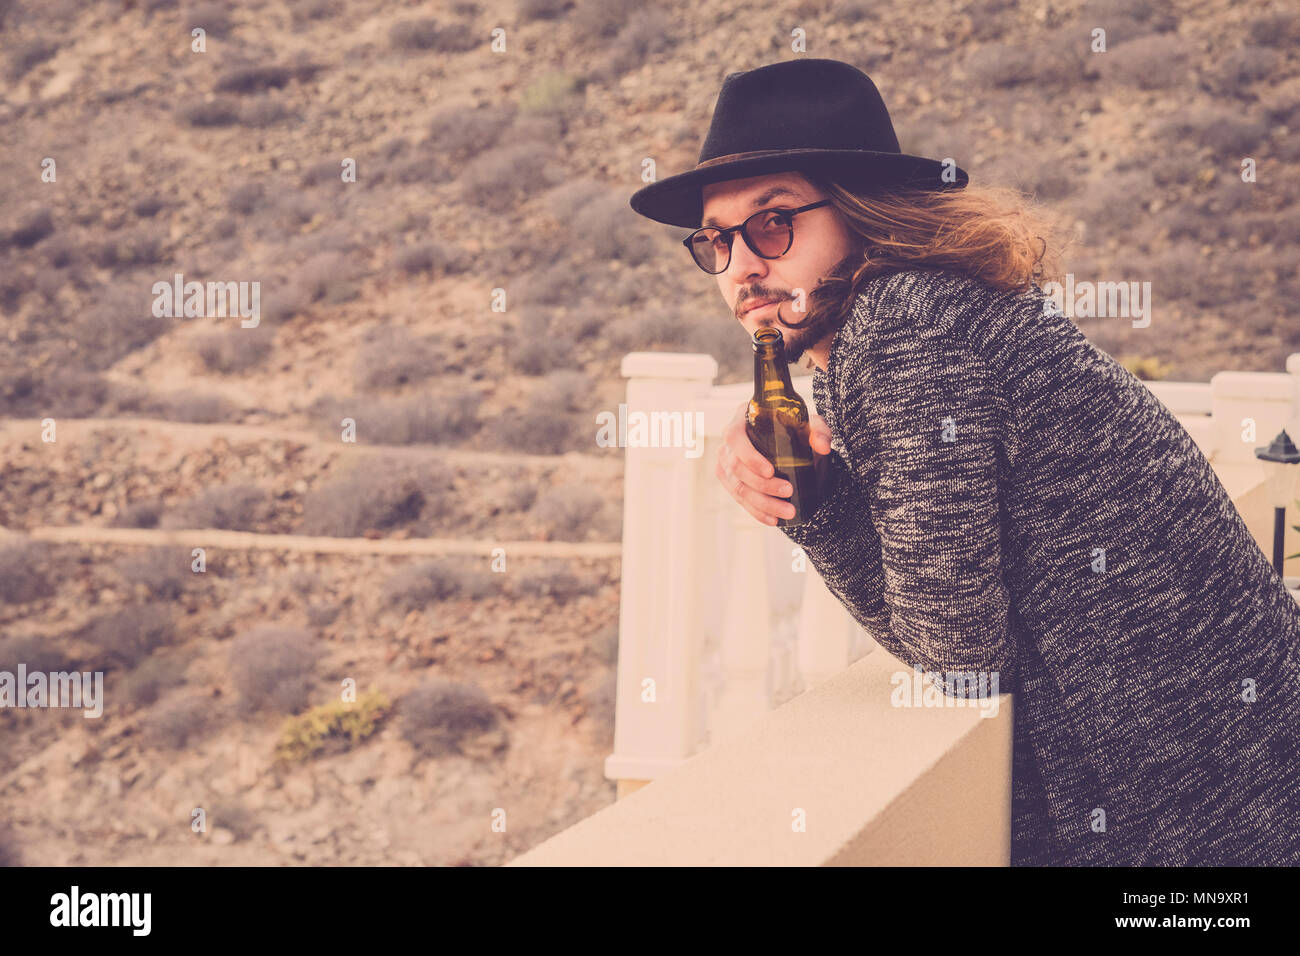 long hair beautiful young man drinking beer outdoor on the rooftop terrace with mountain and nature in background. vingtage retro filter. black hat an - Stock Image